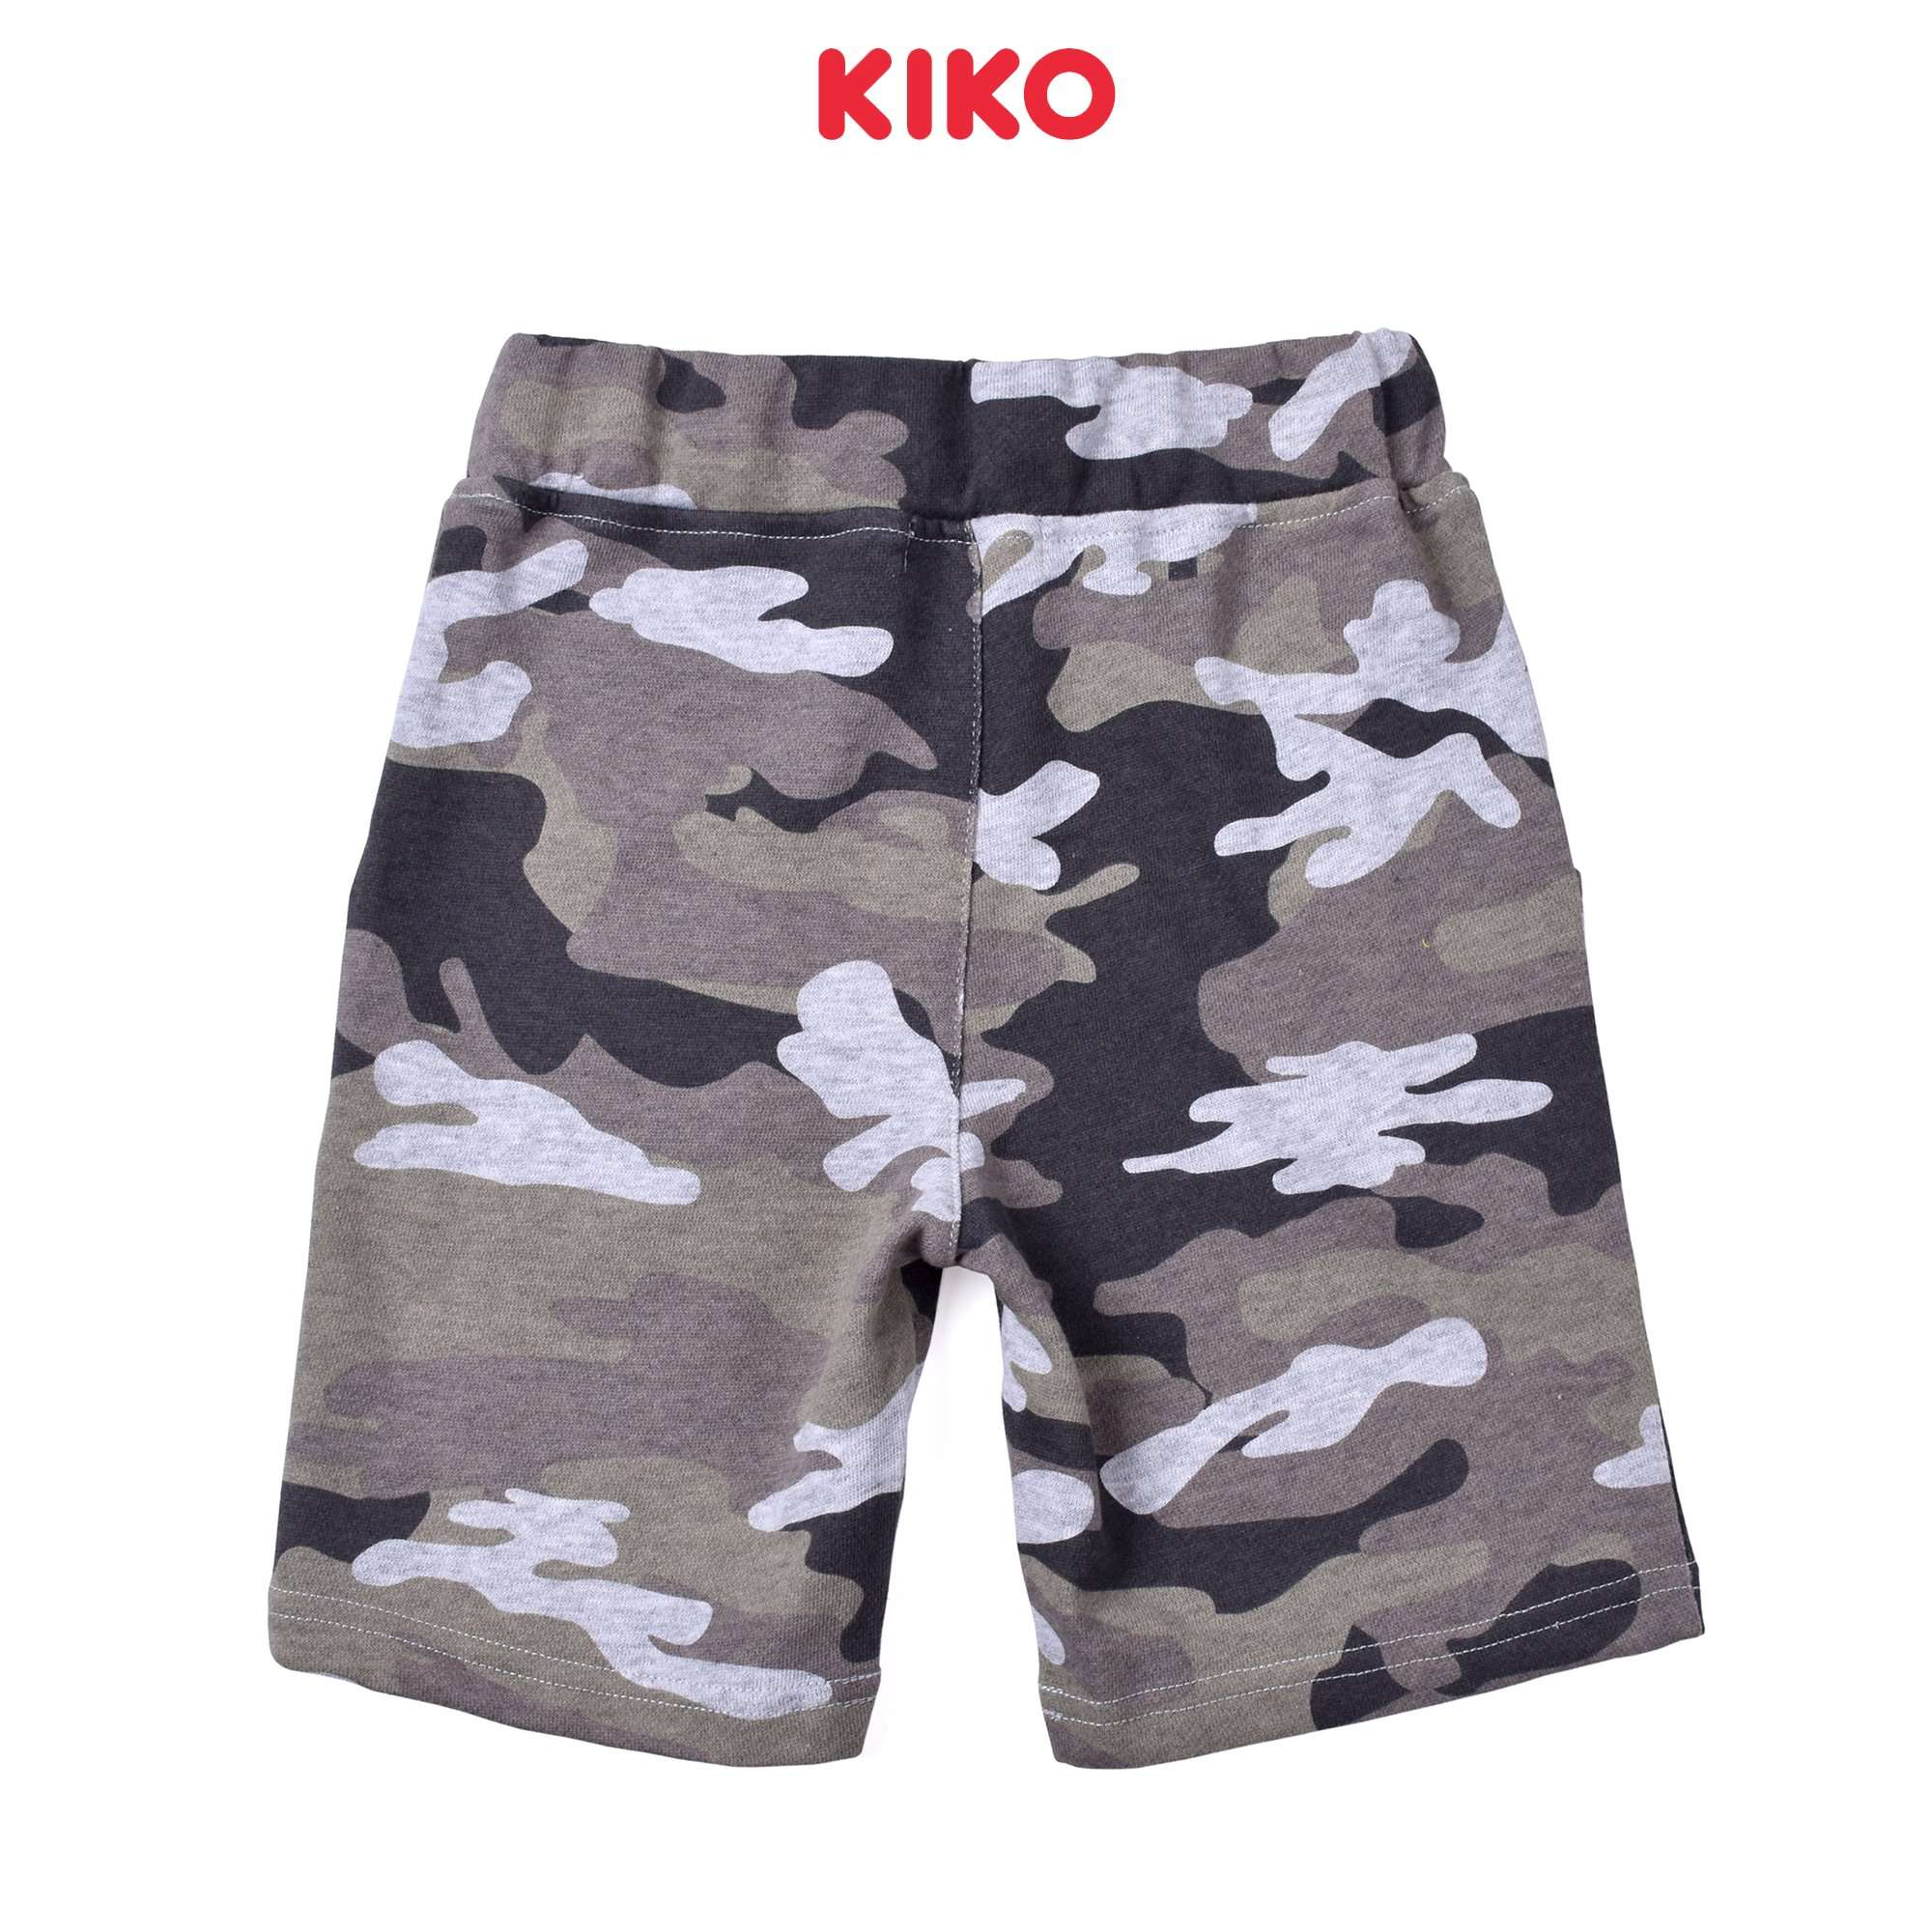 KIKO Boy Knit Short Pants - Grey 121263-282 : Buy KIKO online at CMG.MY